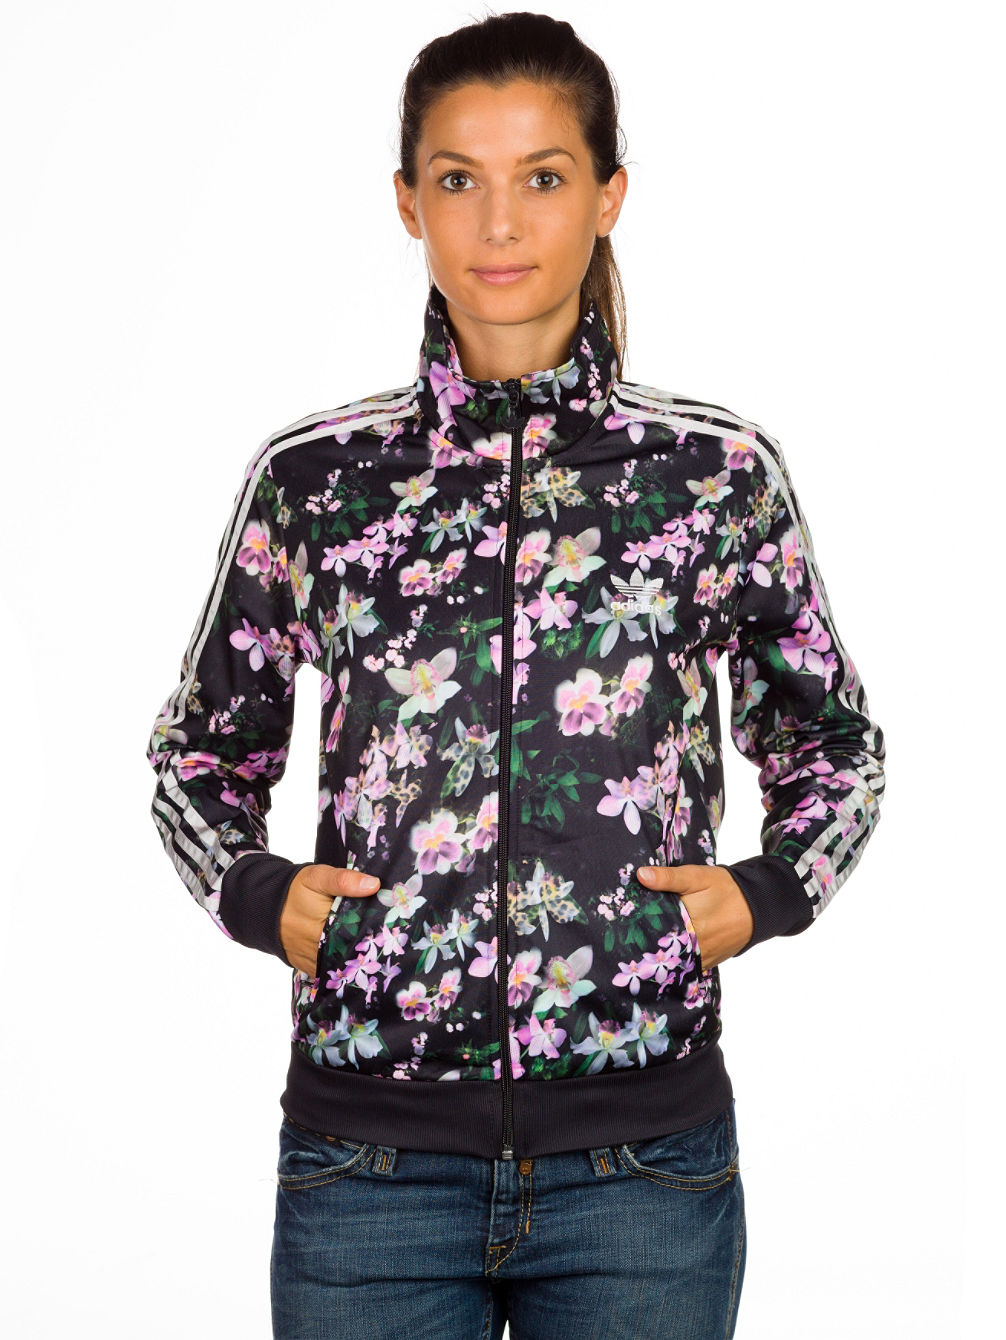 buy adidas originals orchid firebird jacket online at blue. Black Bedroom Furniture Sets. Home Design Ideas